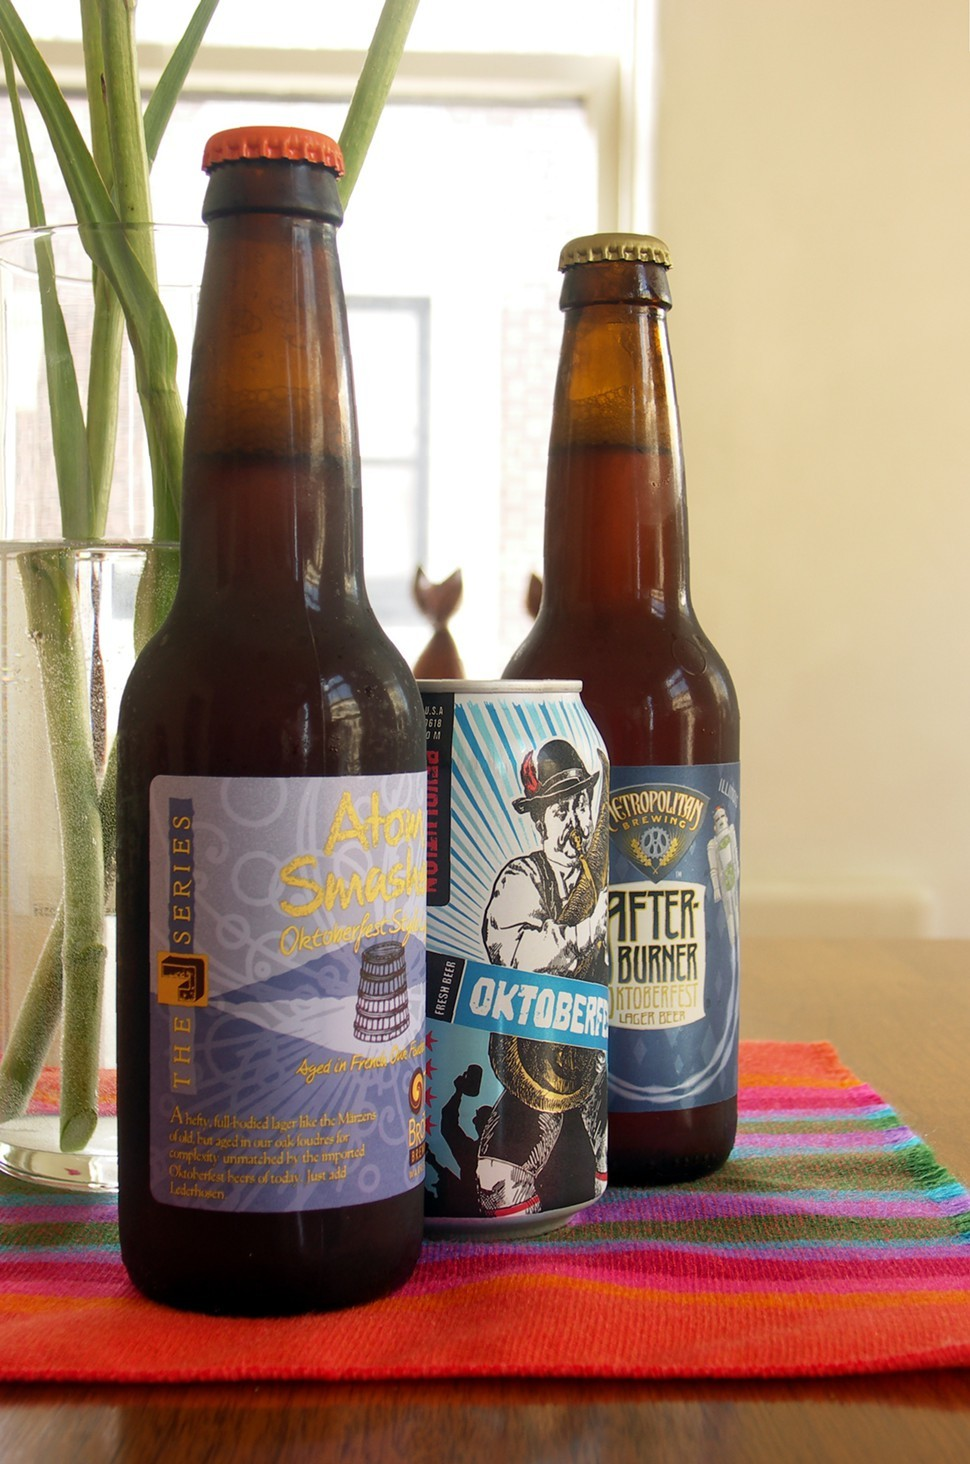 Two Brothers Atom Smasher, Revolution Oktoberfest, and Metropolitan Afterburner